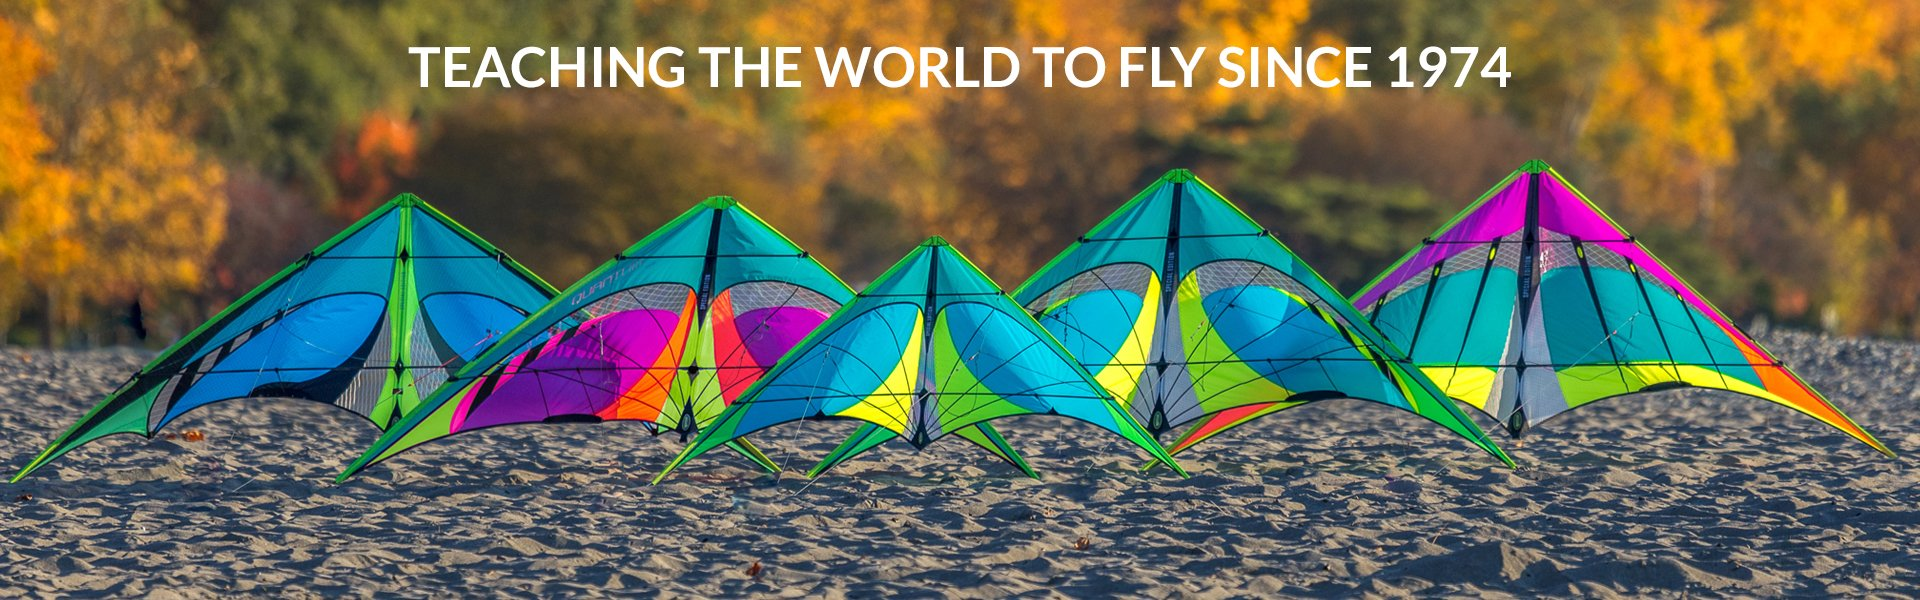 Kites For Every Age and Skill Level